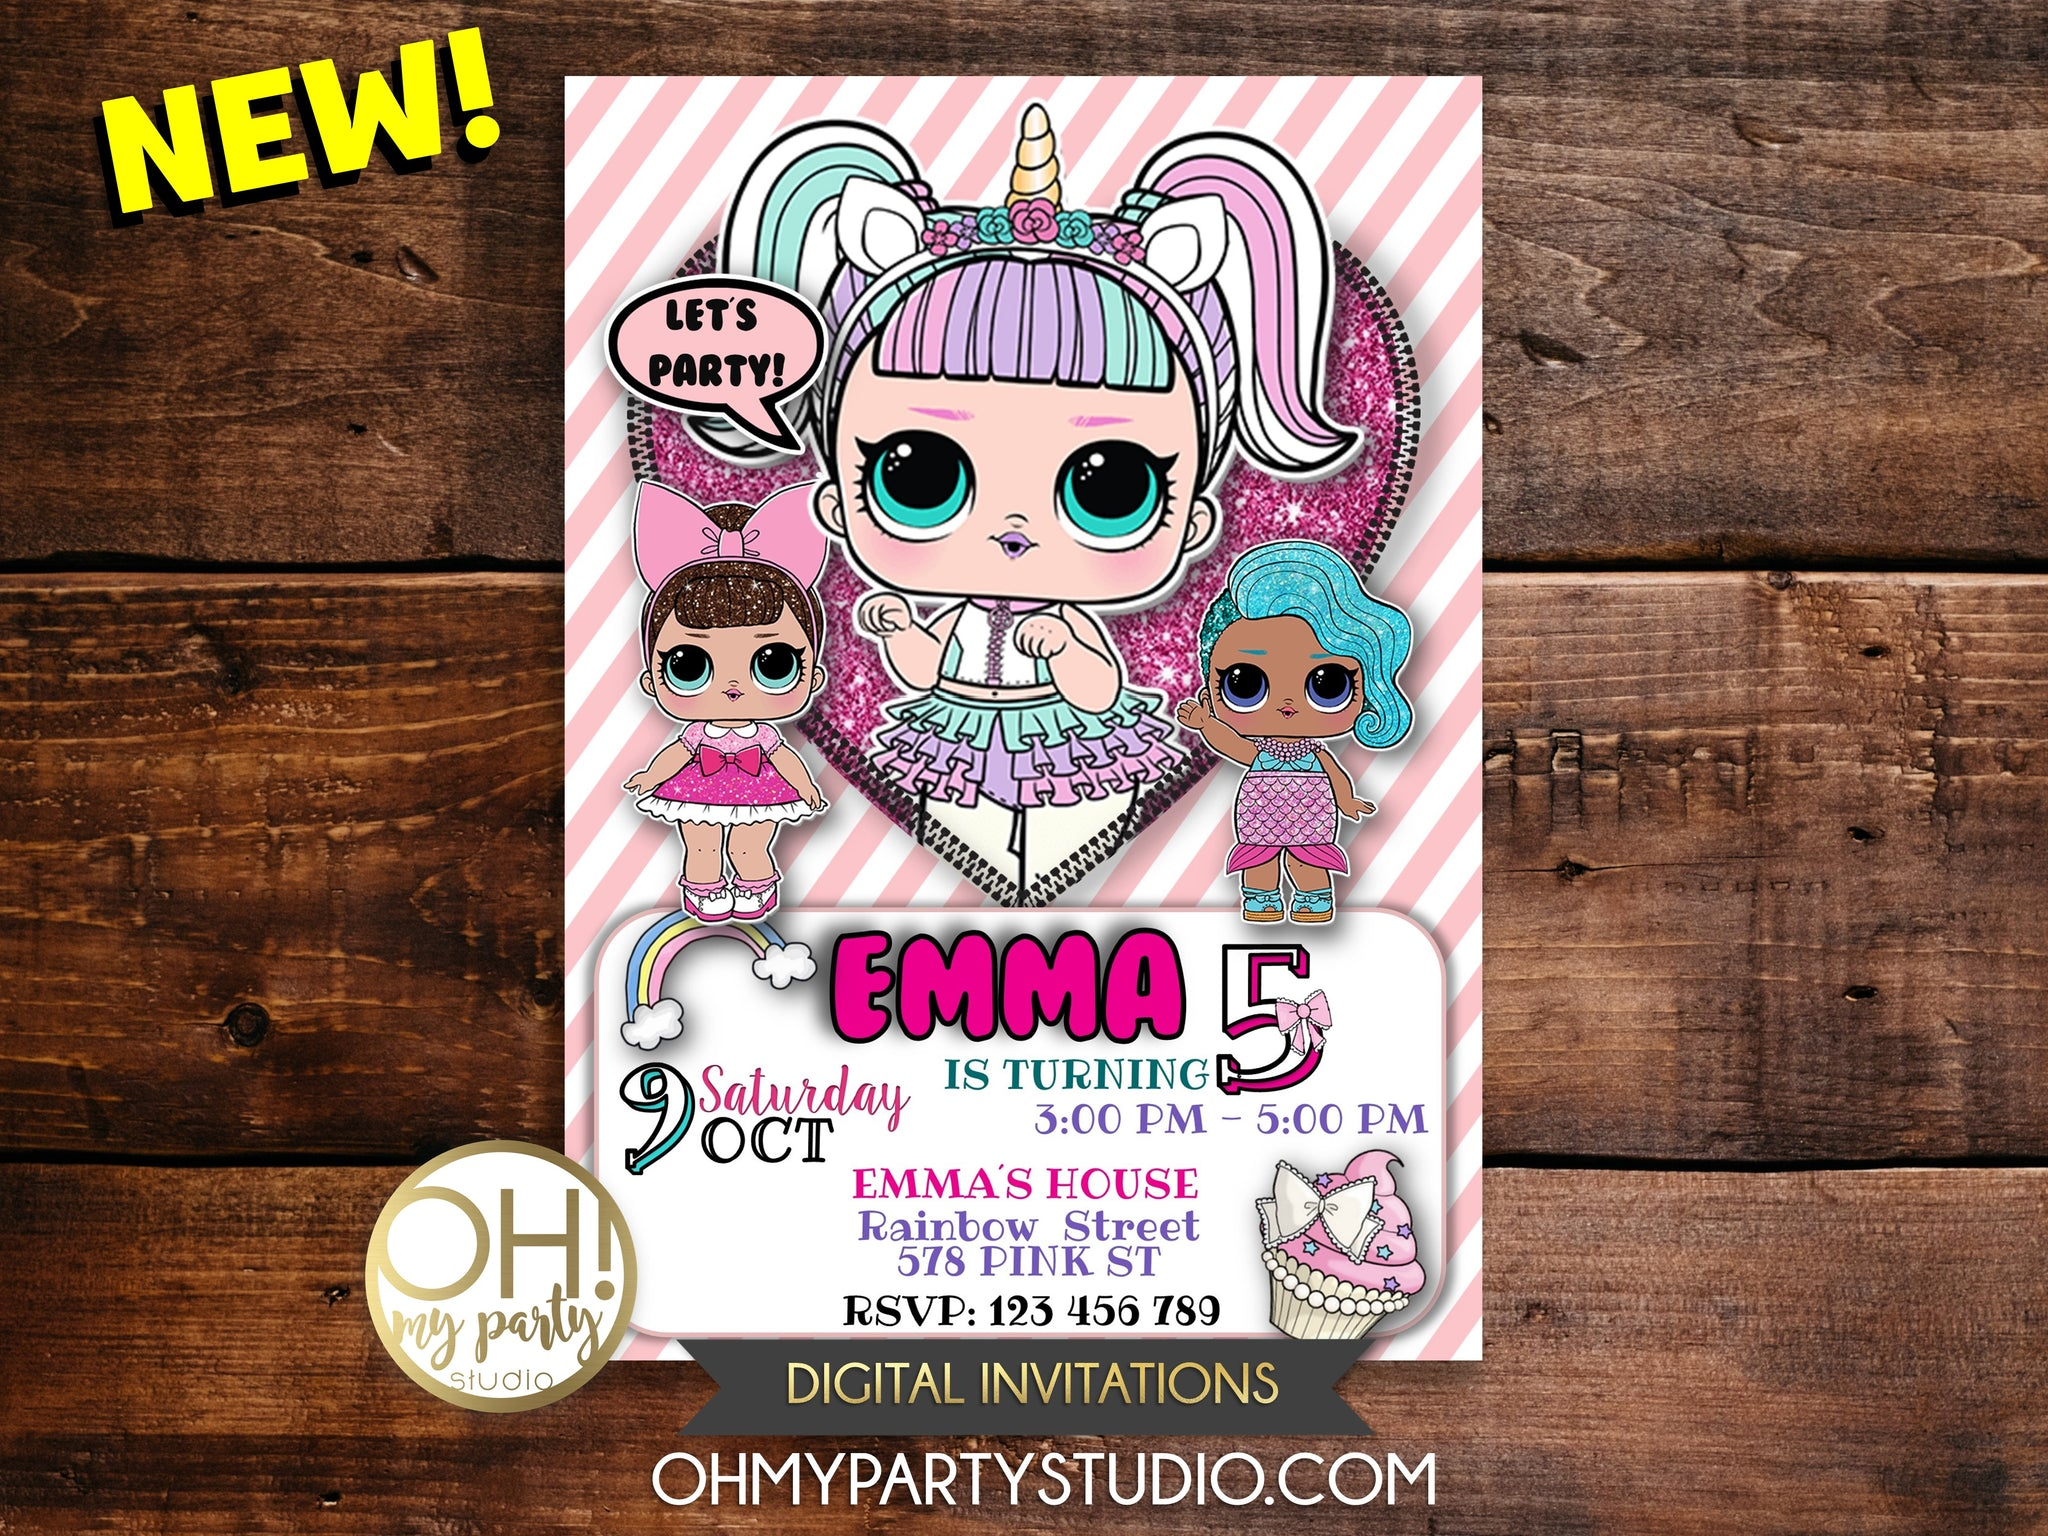 LOL DOLLS, LOL SURPRISE BIRTHDAY PARTY, LOL SURPRISE INVITATION, LOL SURPRISE INVITATIONS, LOL SURPRISE INVITE, LOL SURPRISE PARTY, LOL SURPRISE BIRTHDAY, LOL SURPRISE PRINTABLE, LOL DOLLS INVITATIONS, LOL DOLLS PARTY, LOL DOLLS BIRTHDAY, LOL DOLLS PRINTABLE, LOL DOLLS